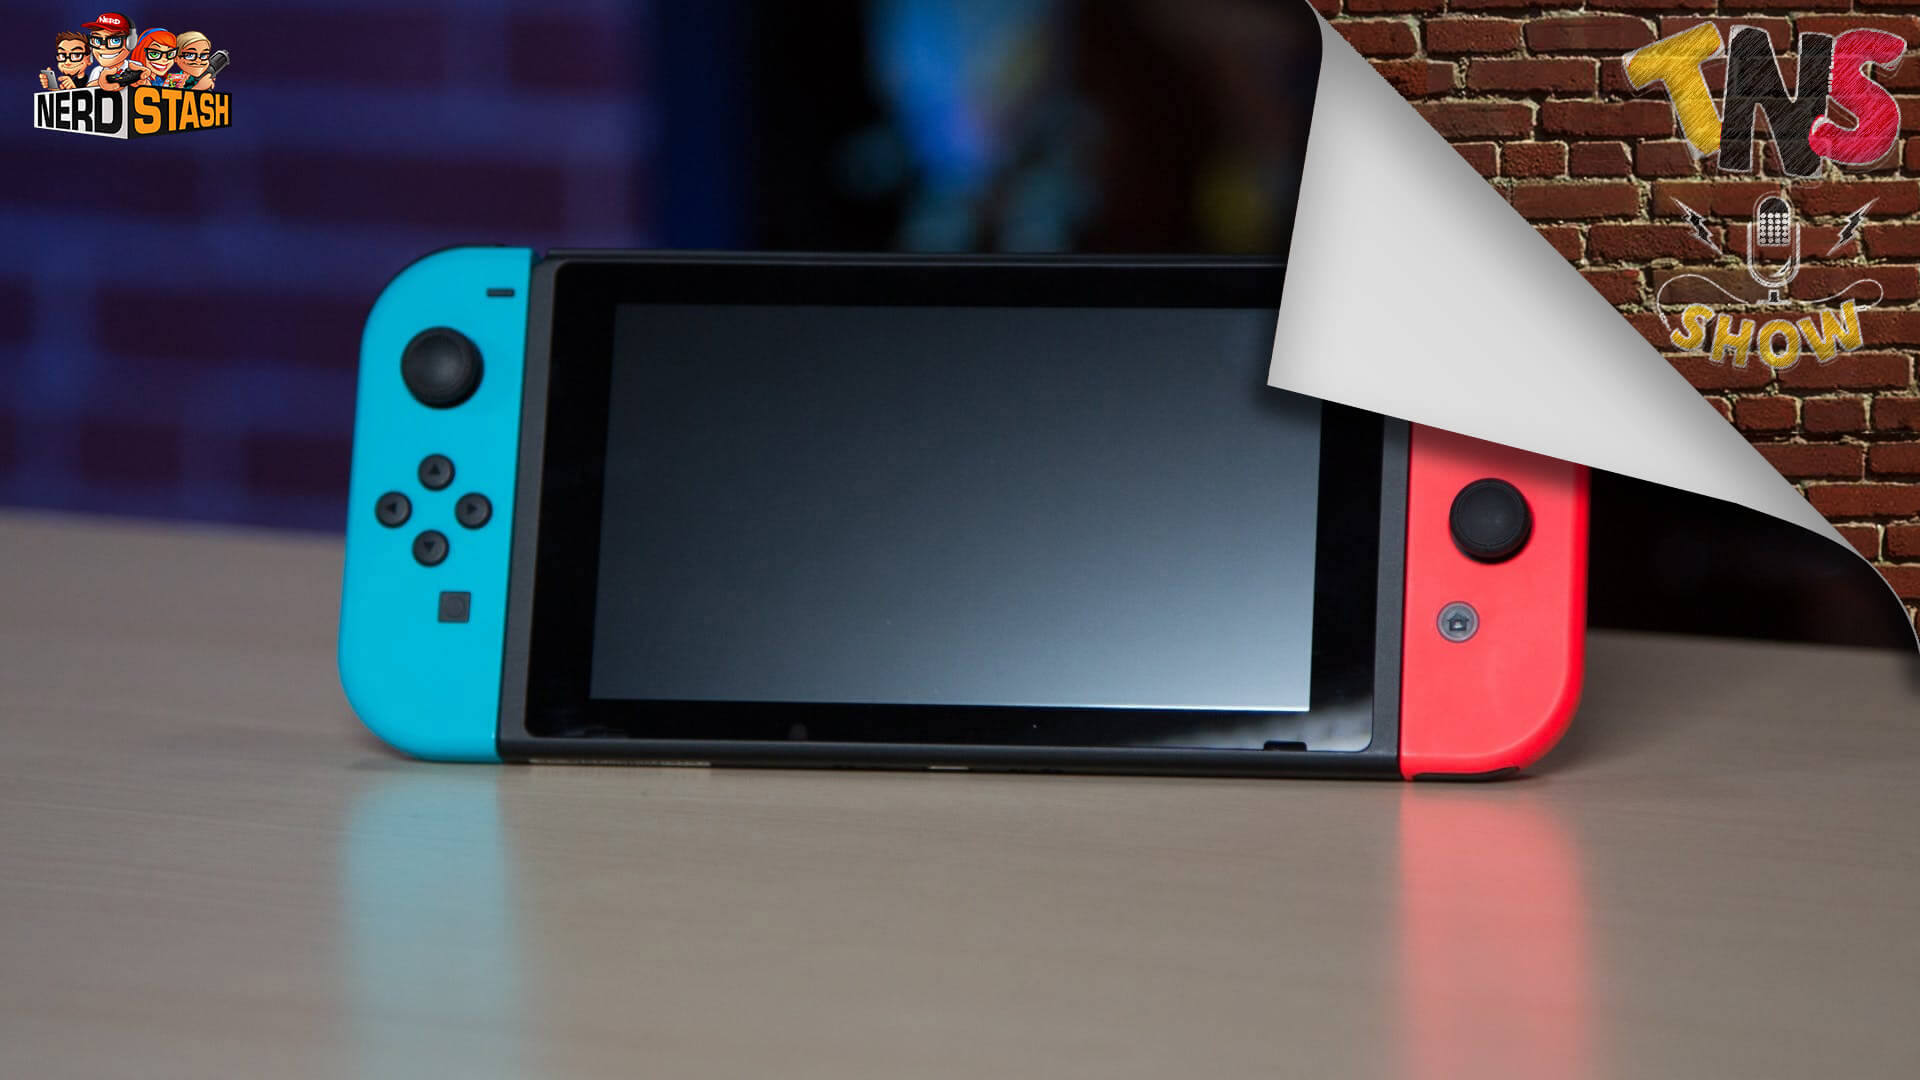 The Nerd Stash Show #55 - A New Nintendo Switch Model, You Say?